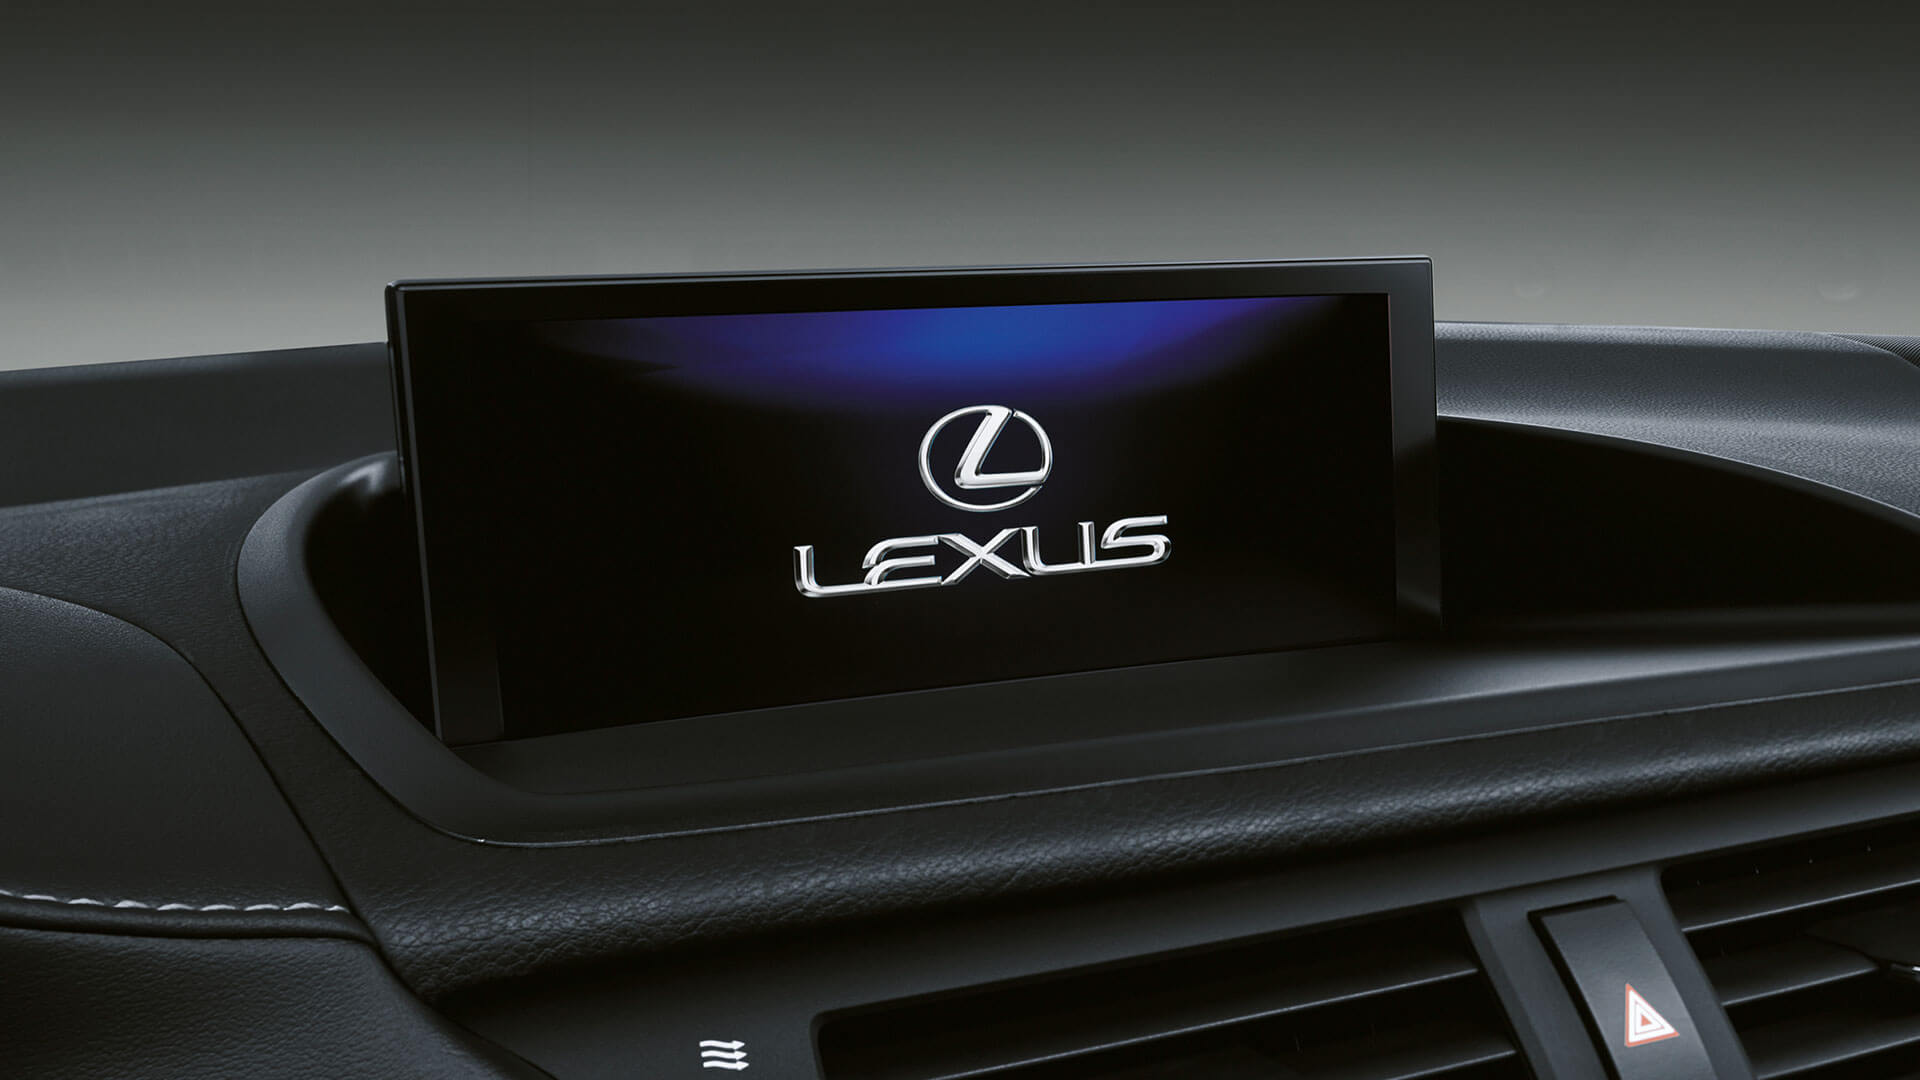 2018 lexus ct 200h my18 features media display